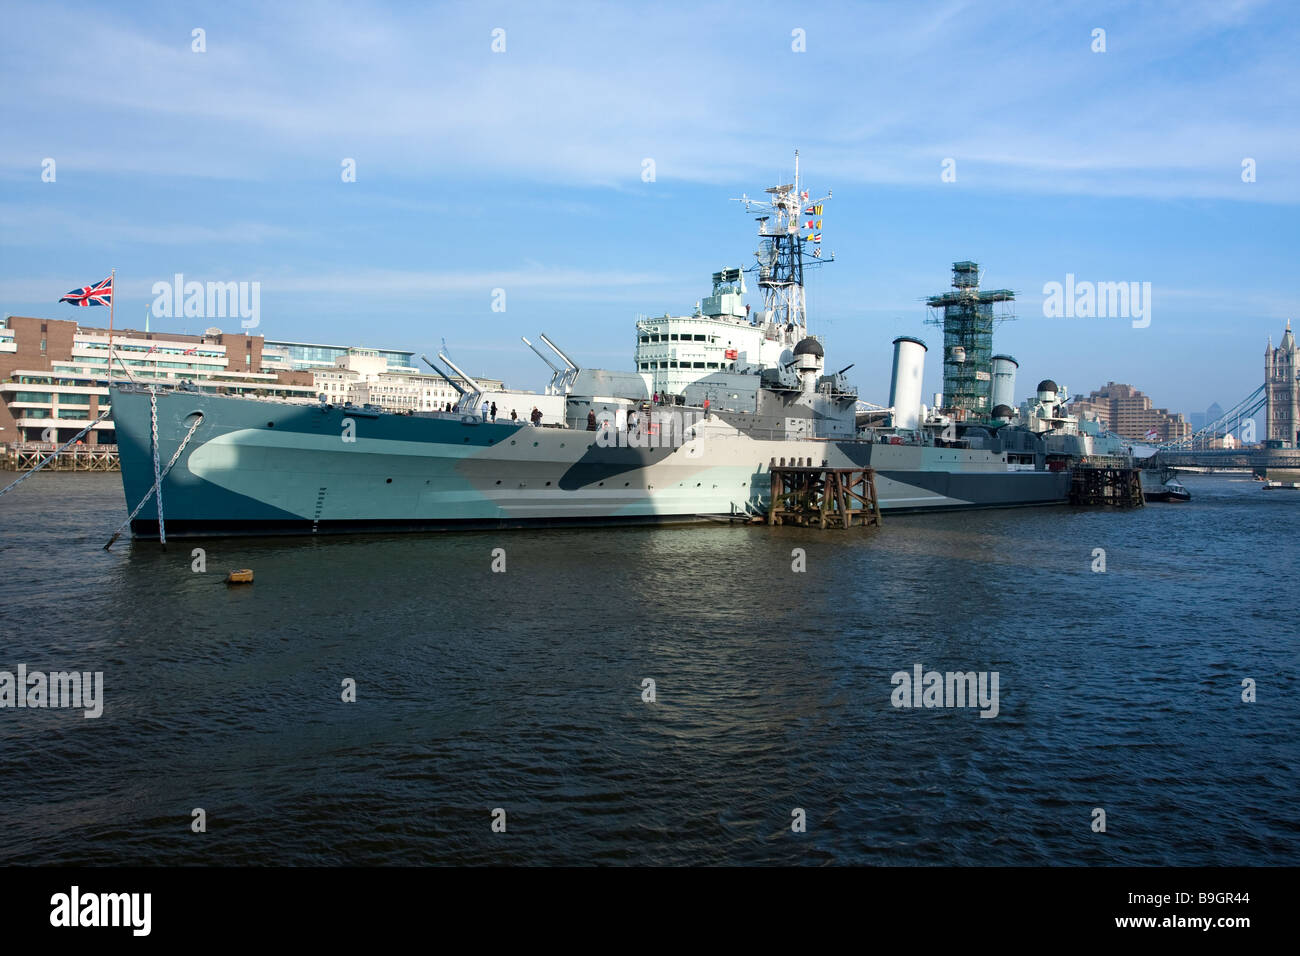 HMS Belfast on South Bank of the river Thames - Stock Image